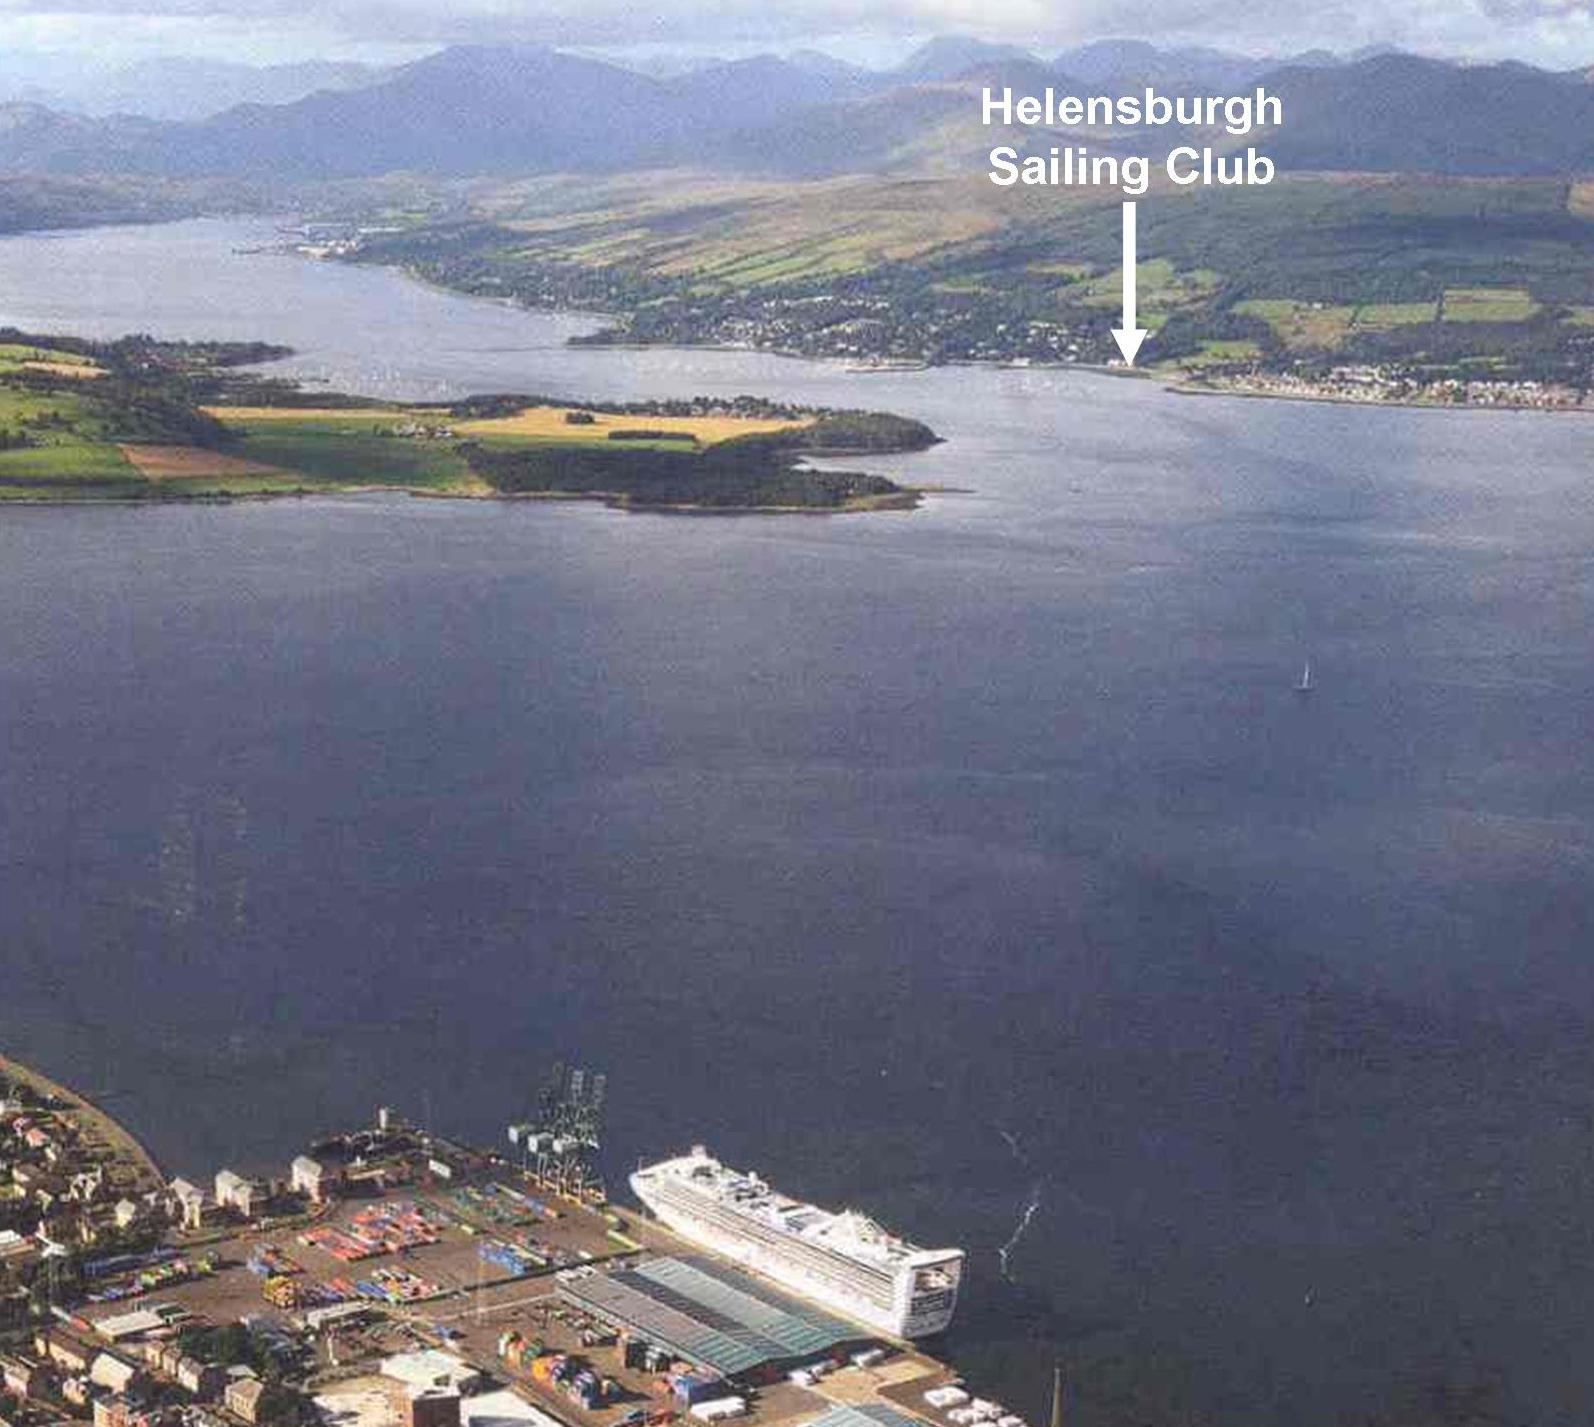 Arial view of the estuary around Helensburgh